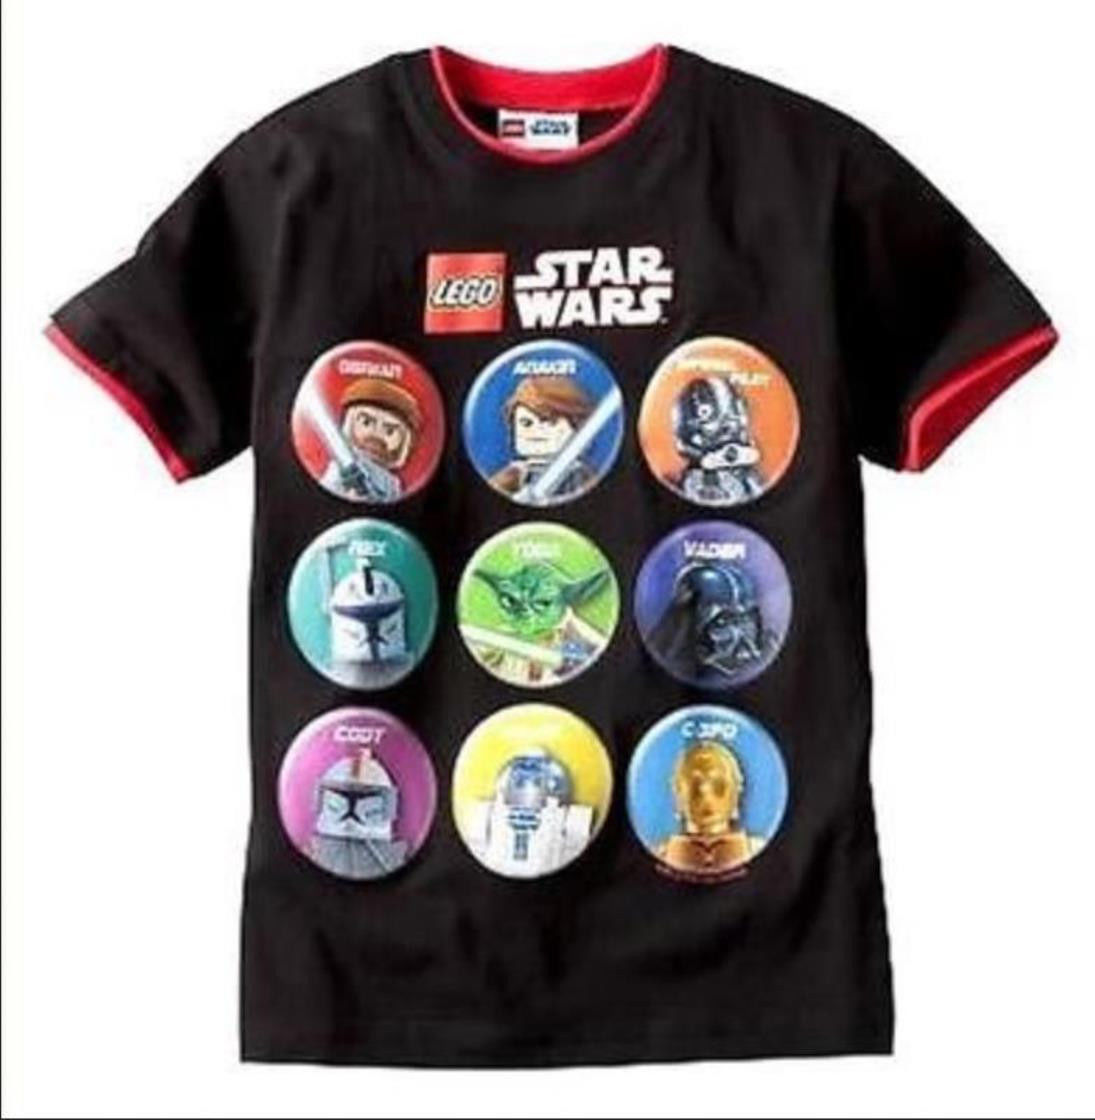 BOYS 10/12, 14/16 OR 18 - Lego Star Wars - Character Circles Cameos T-SHIRT